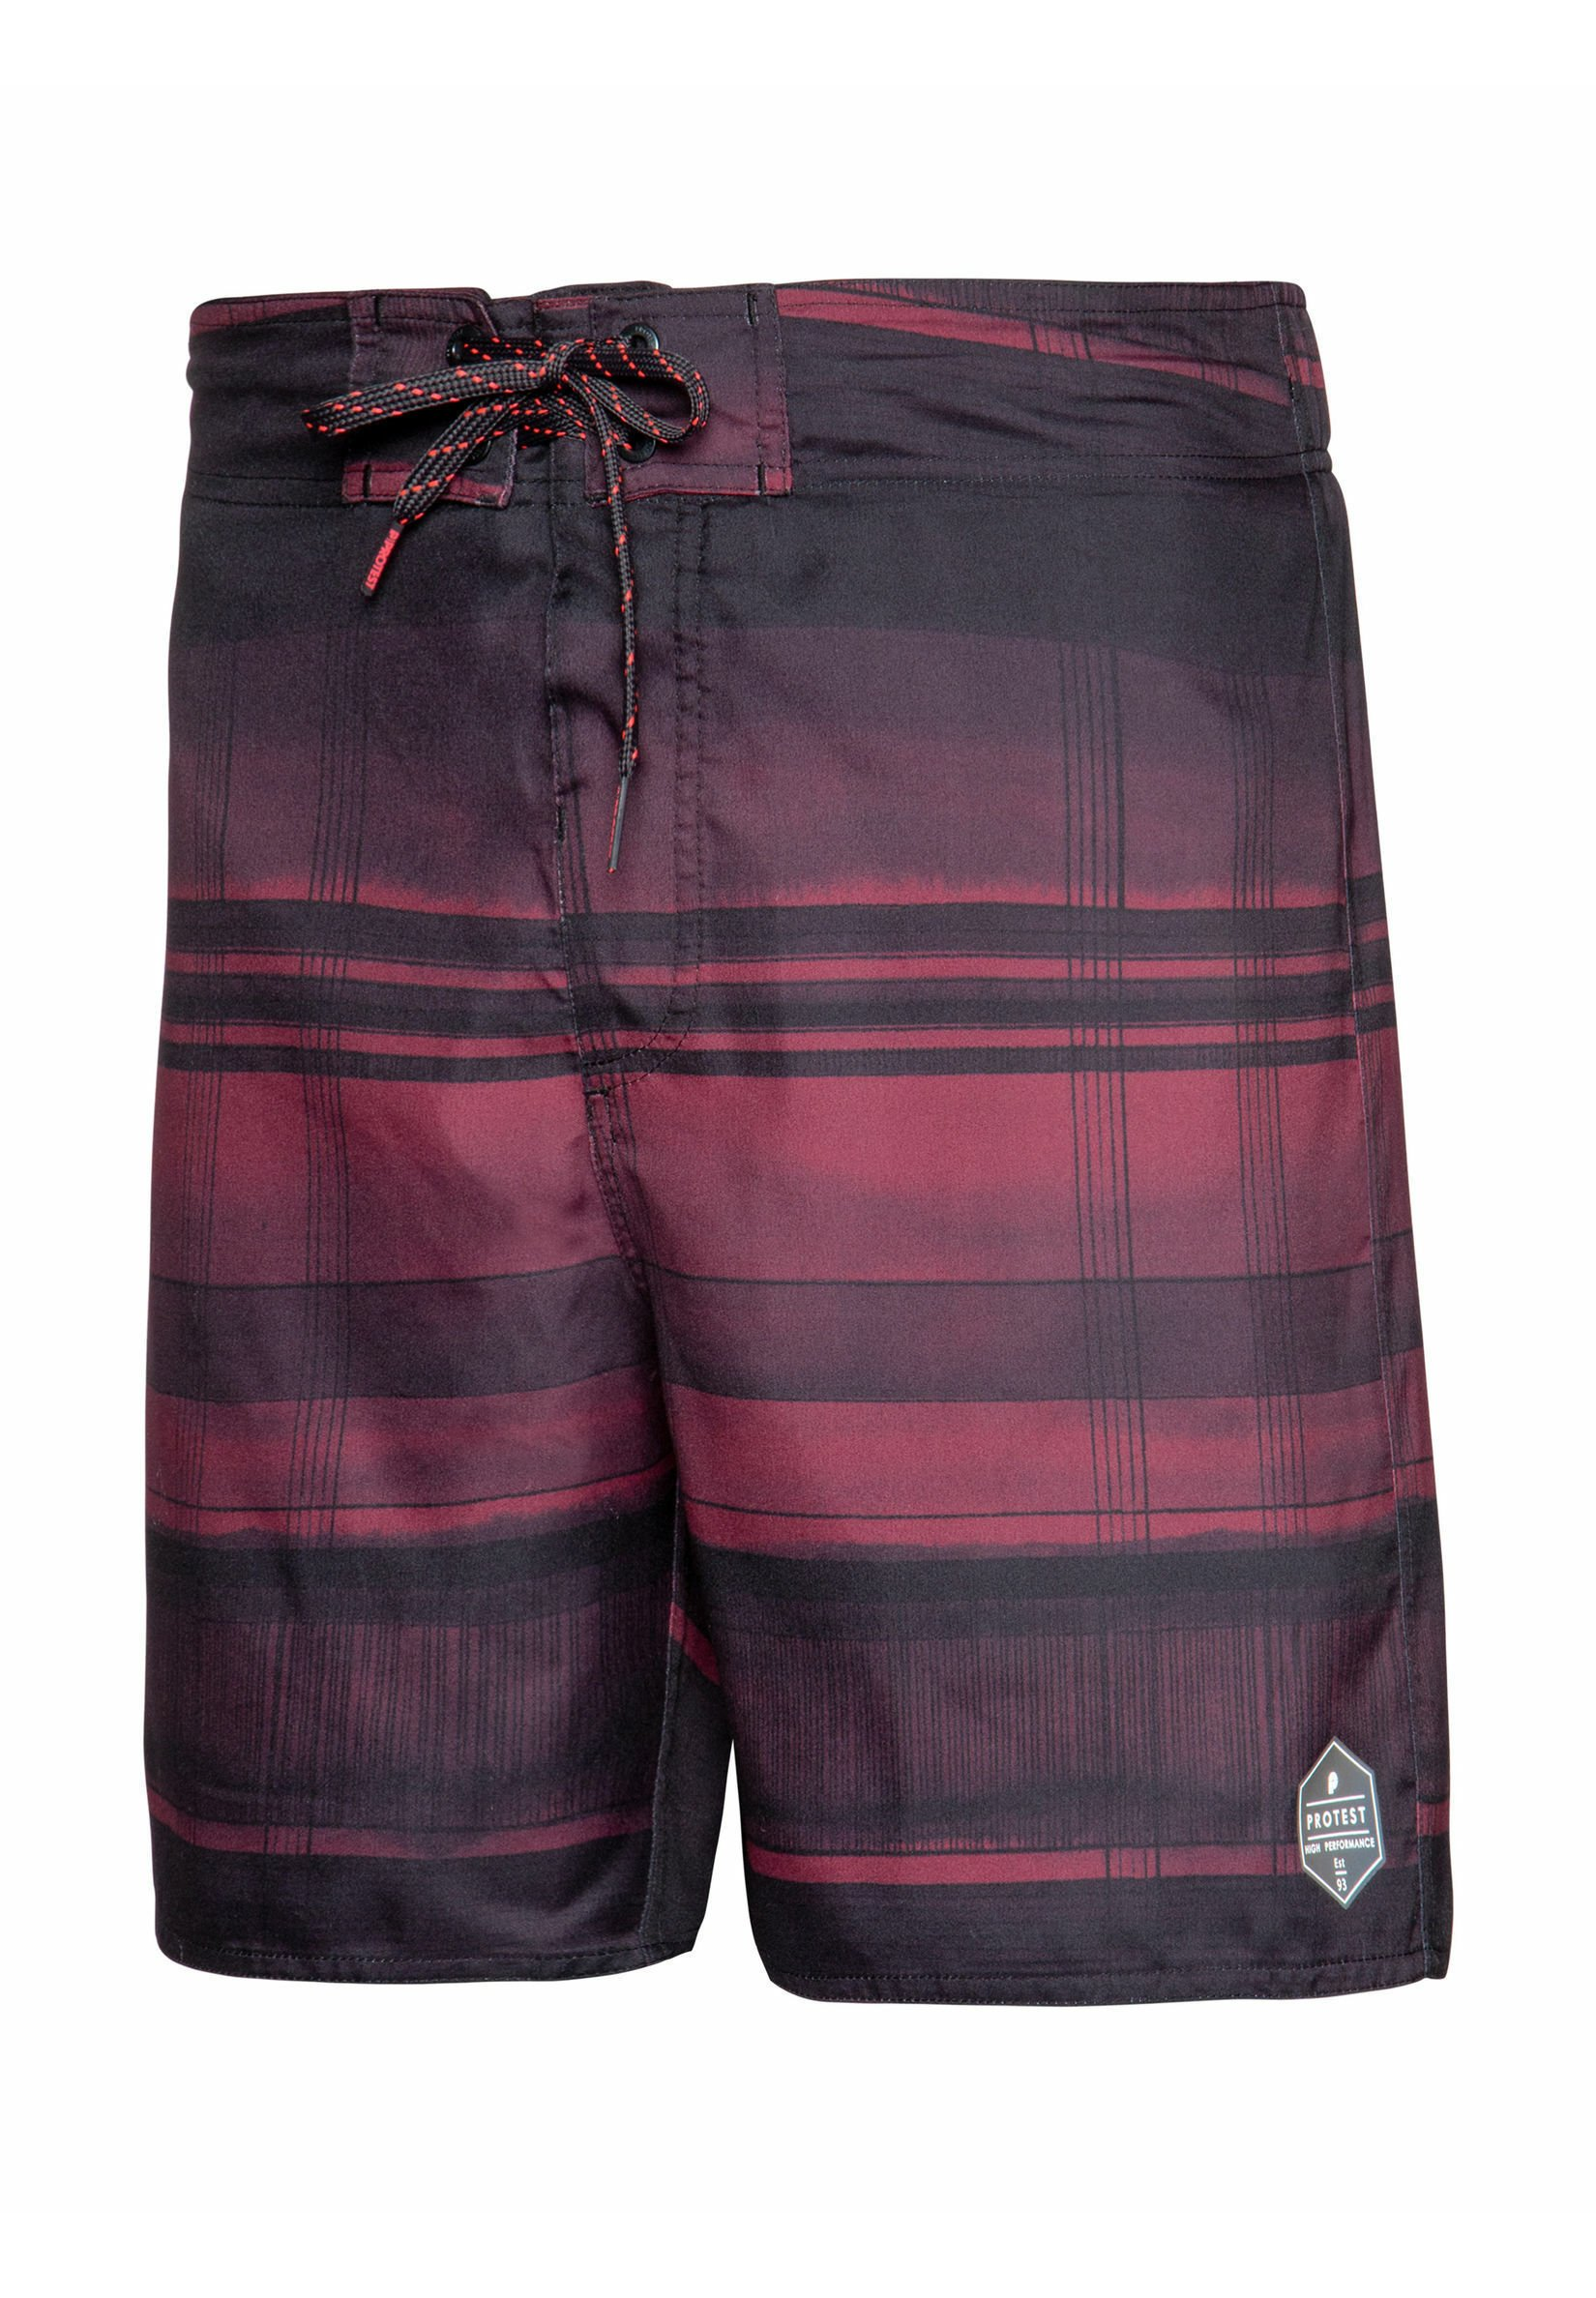 Protest Rainhill - Zwemshorts Dark Cherry